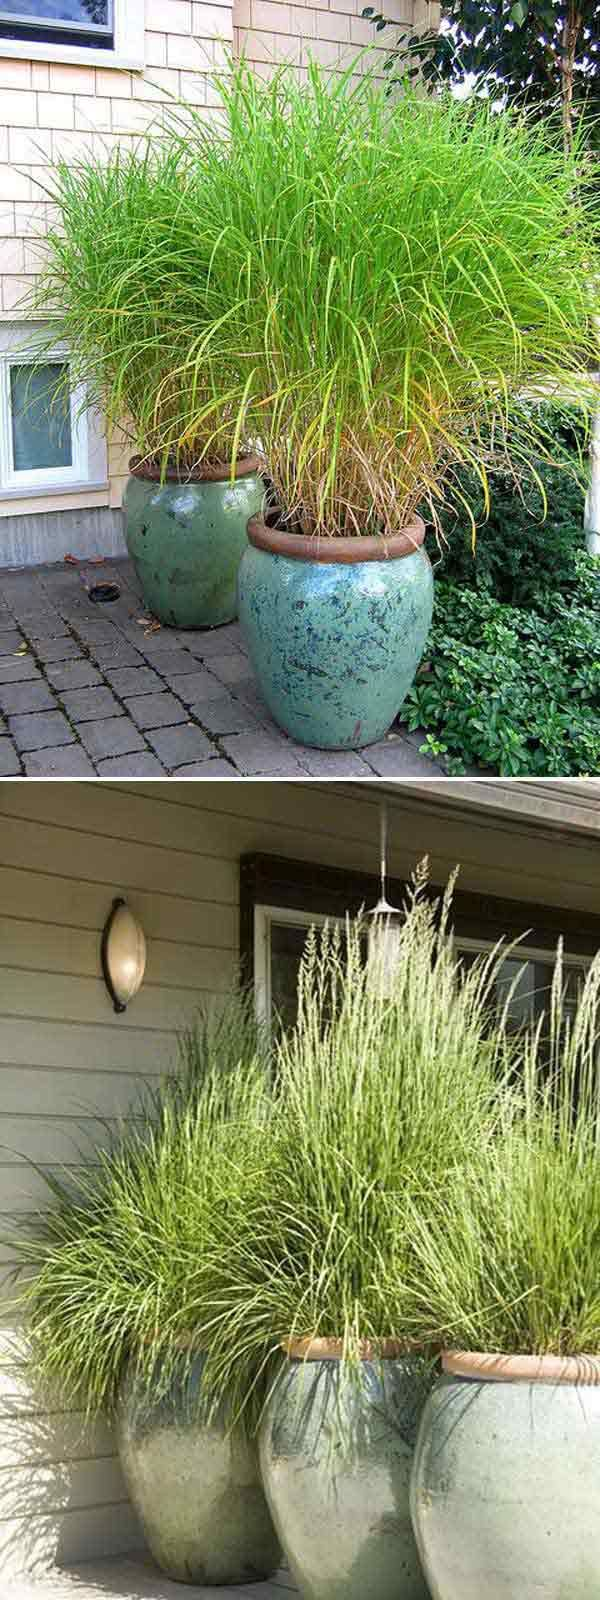 Growing tall and thick grass in big pots is a good idea to create a moveable privacy screen